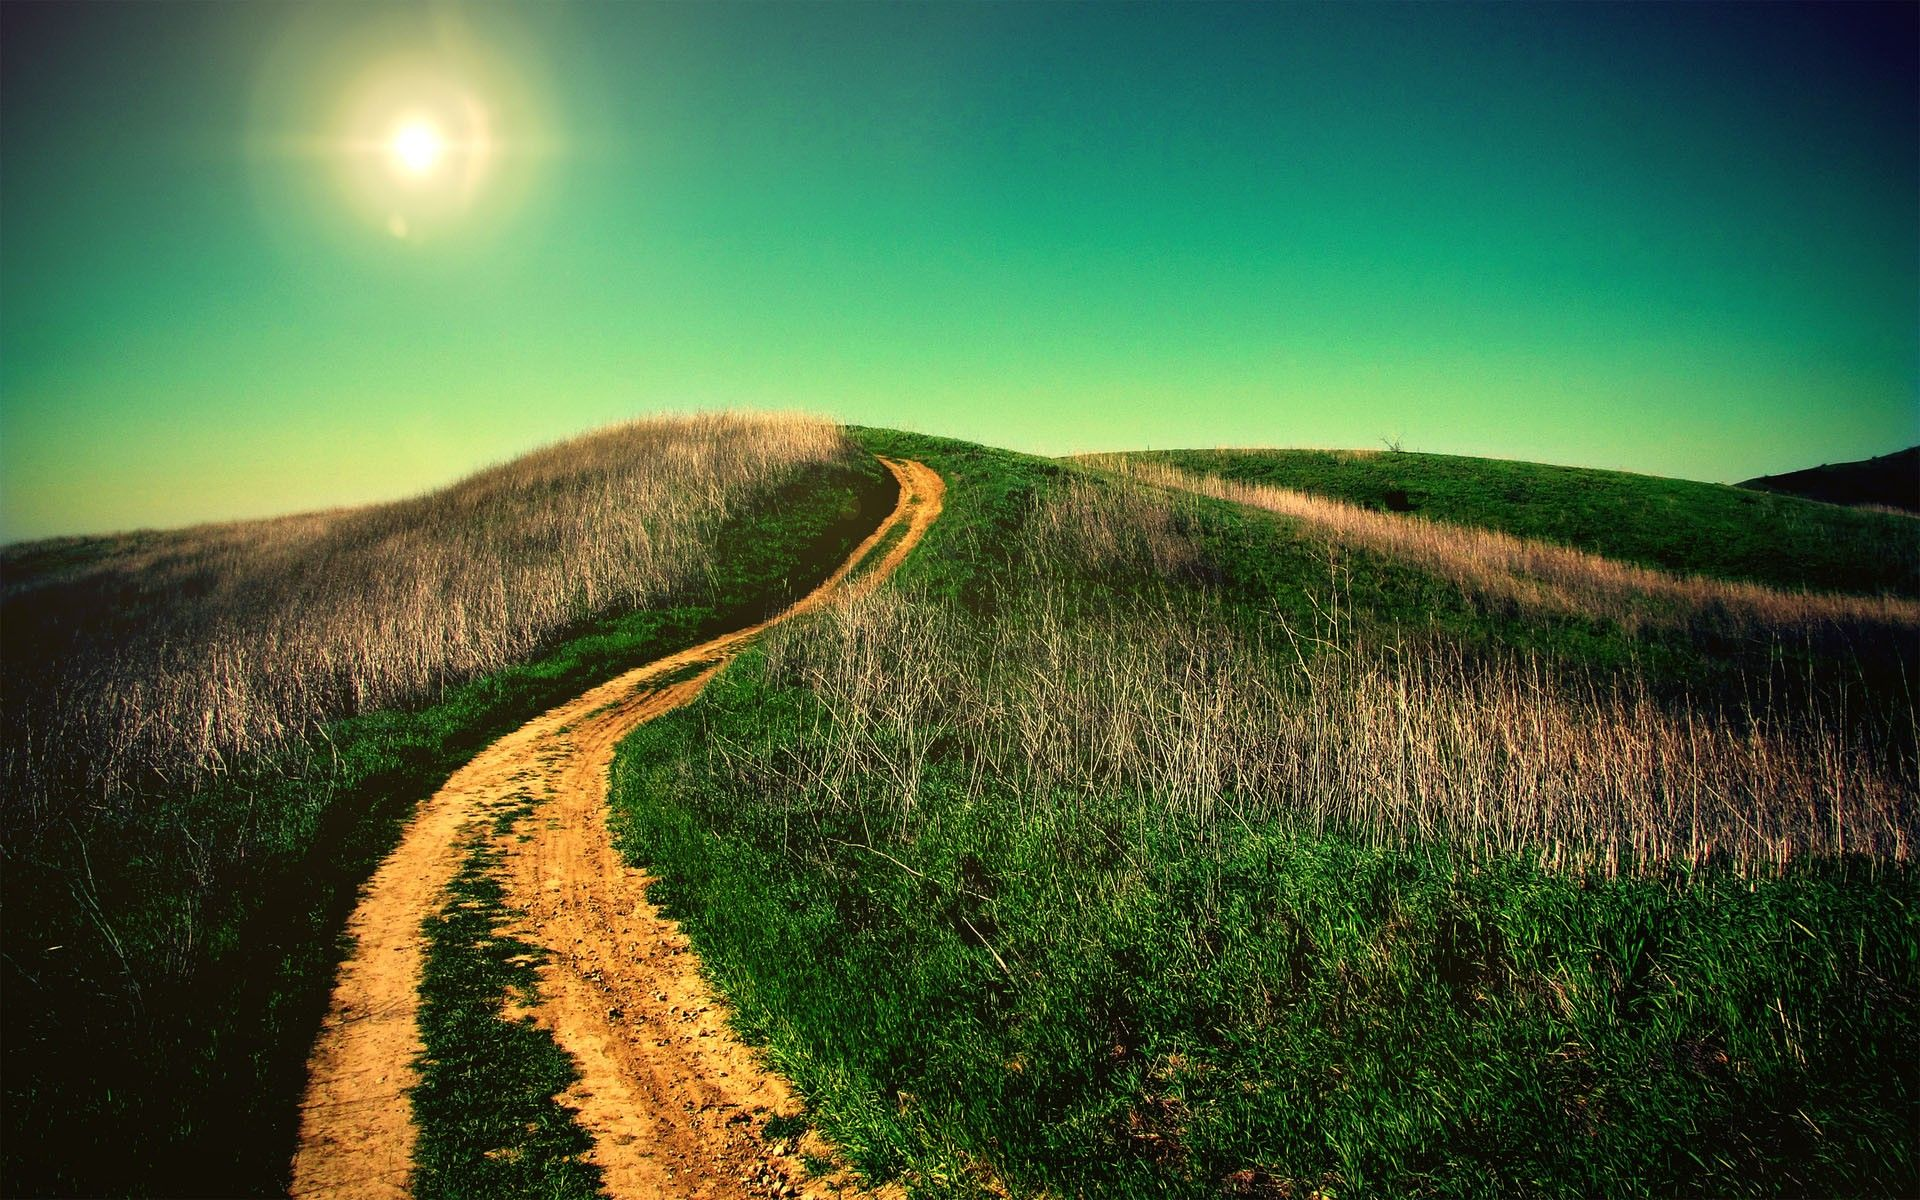 widescreen full screen landscape tuscany green nature background